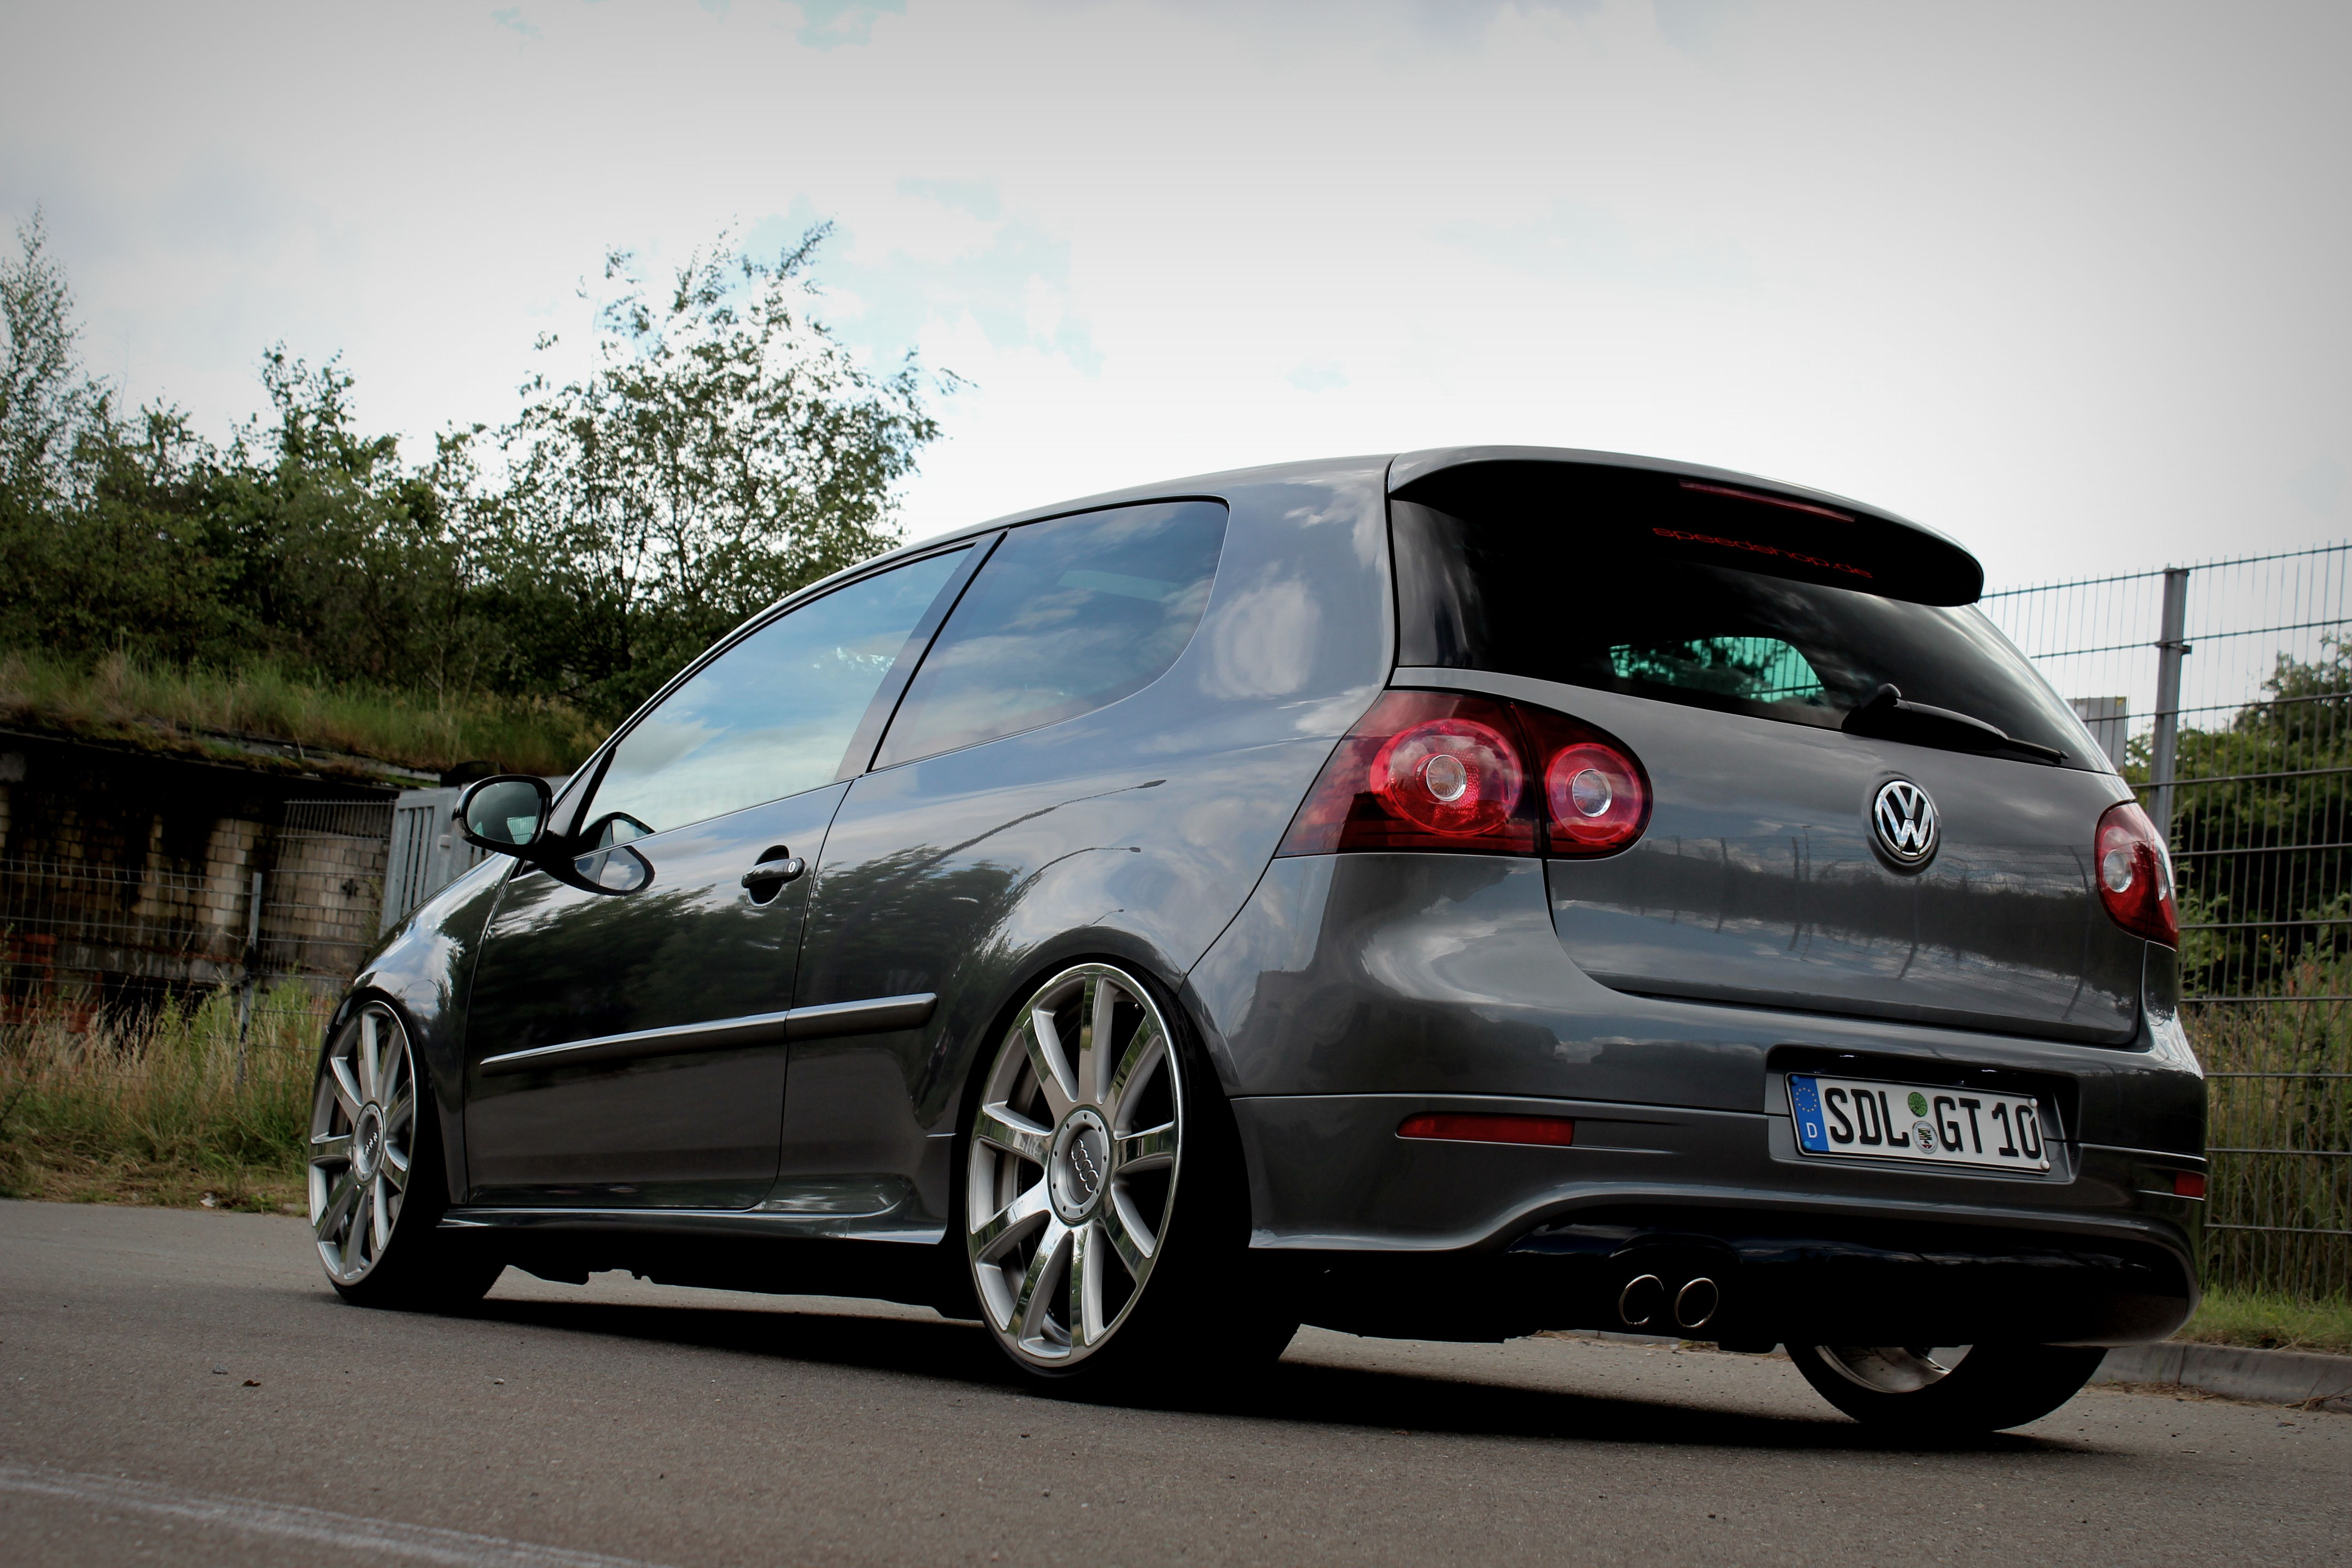 golf 5 gti cars pinterest vw cars and wheels. Black Bedroom Furniture Sets. Home Design Ideas